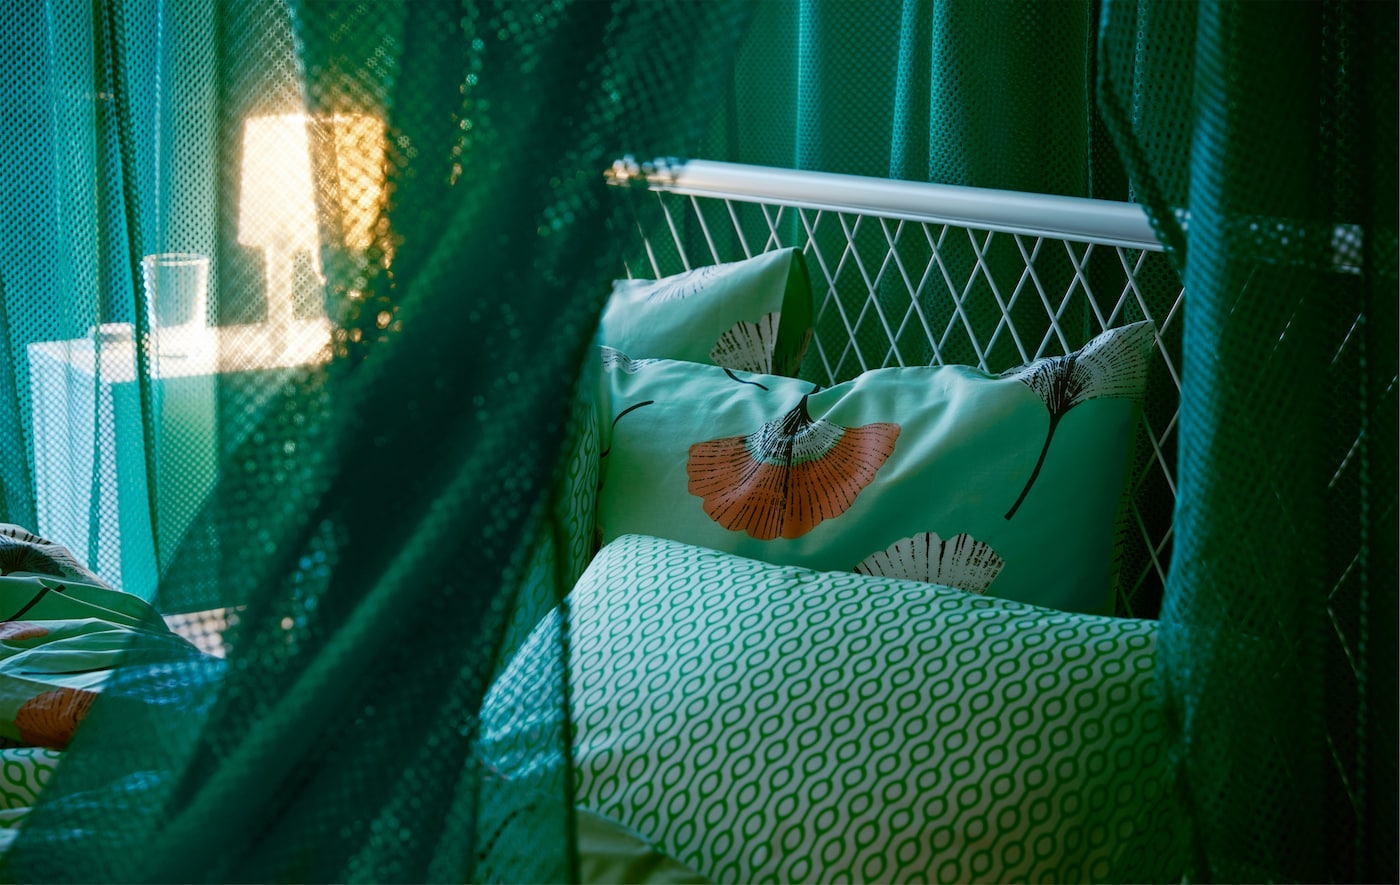 Draped green IKEA GRÅTISTEL net curtains creating a room in the room, while letting through a little light.